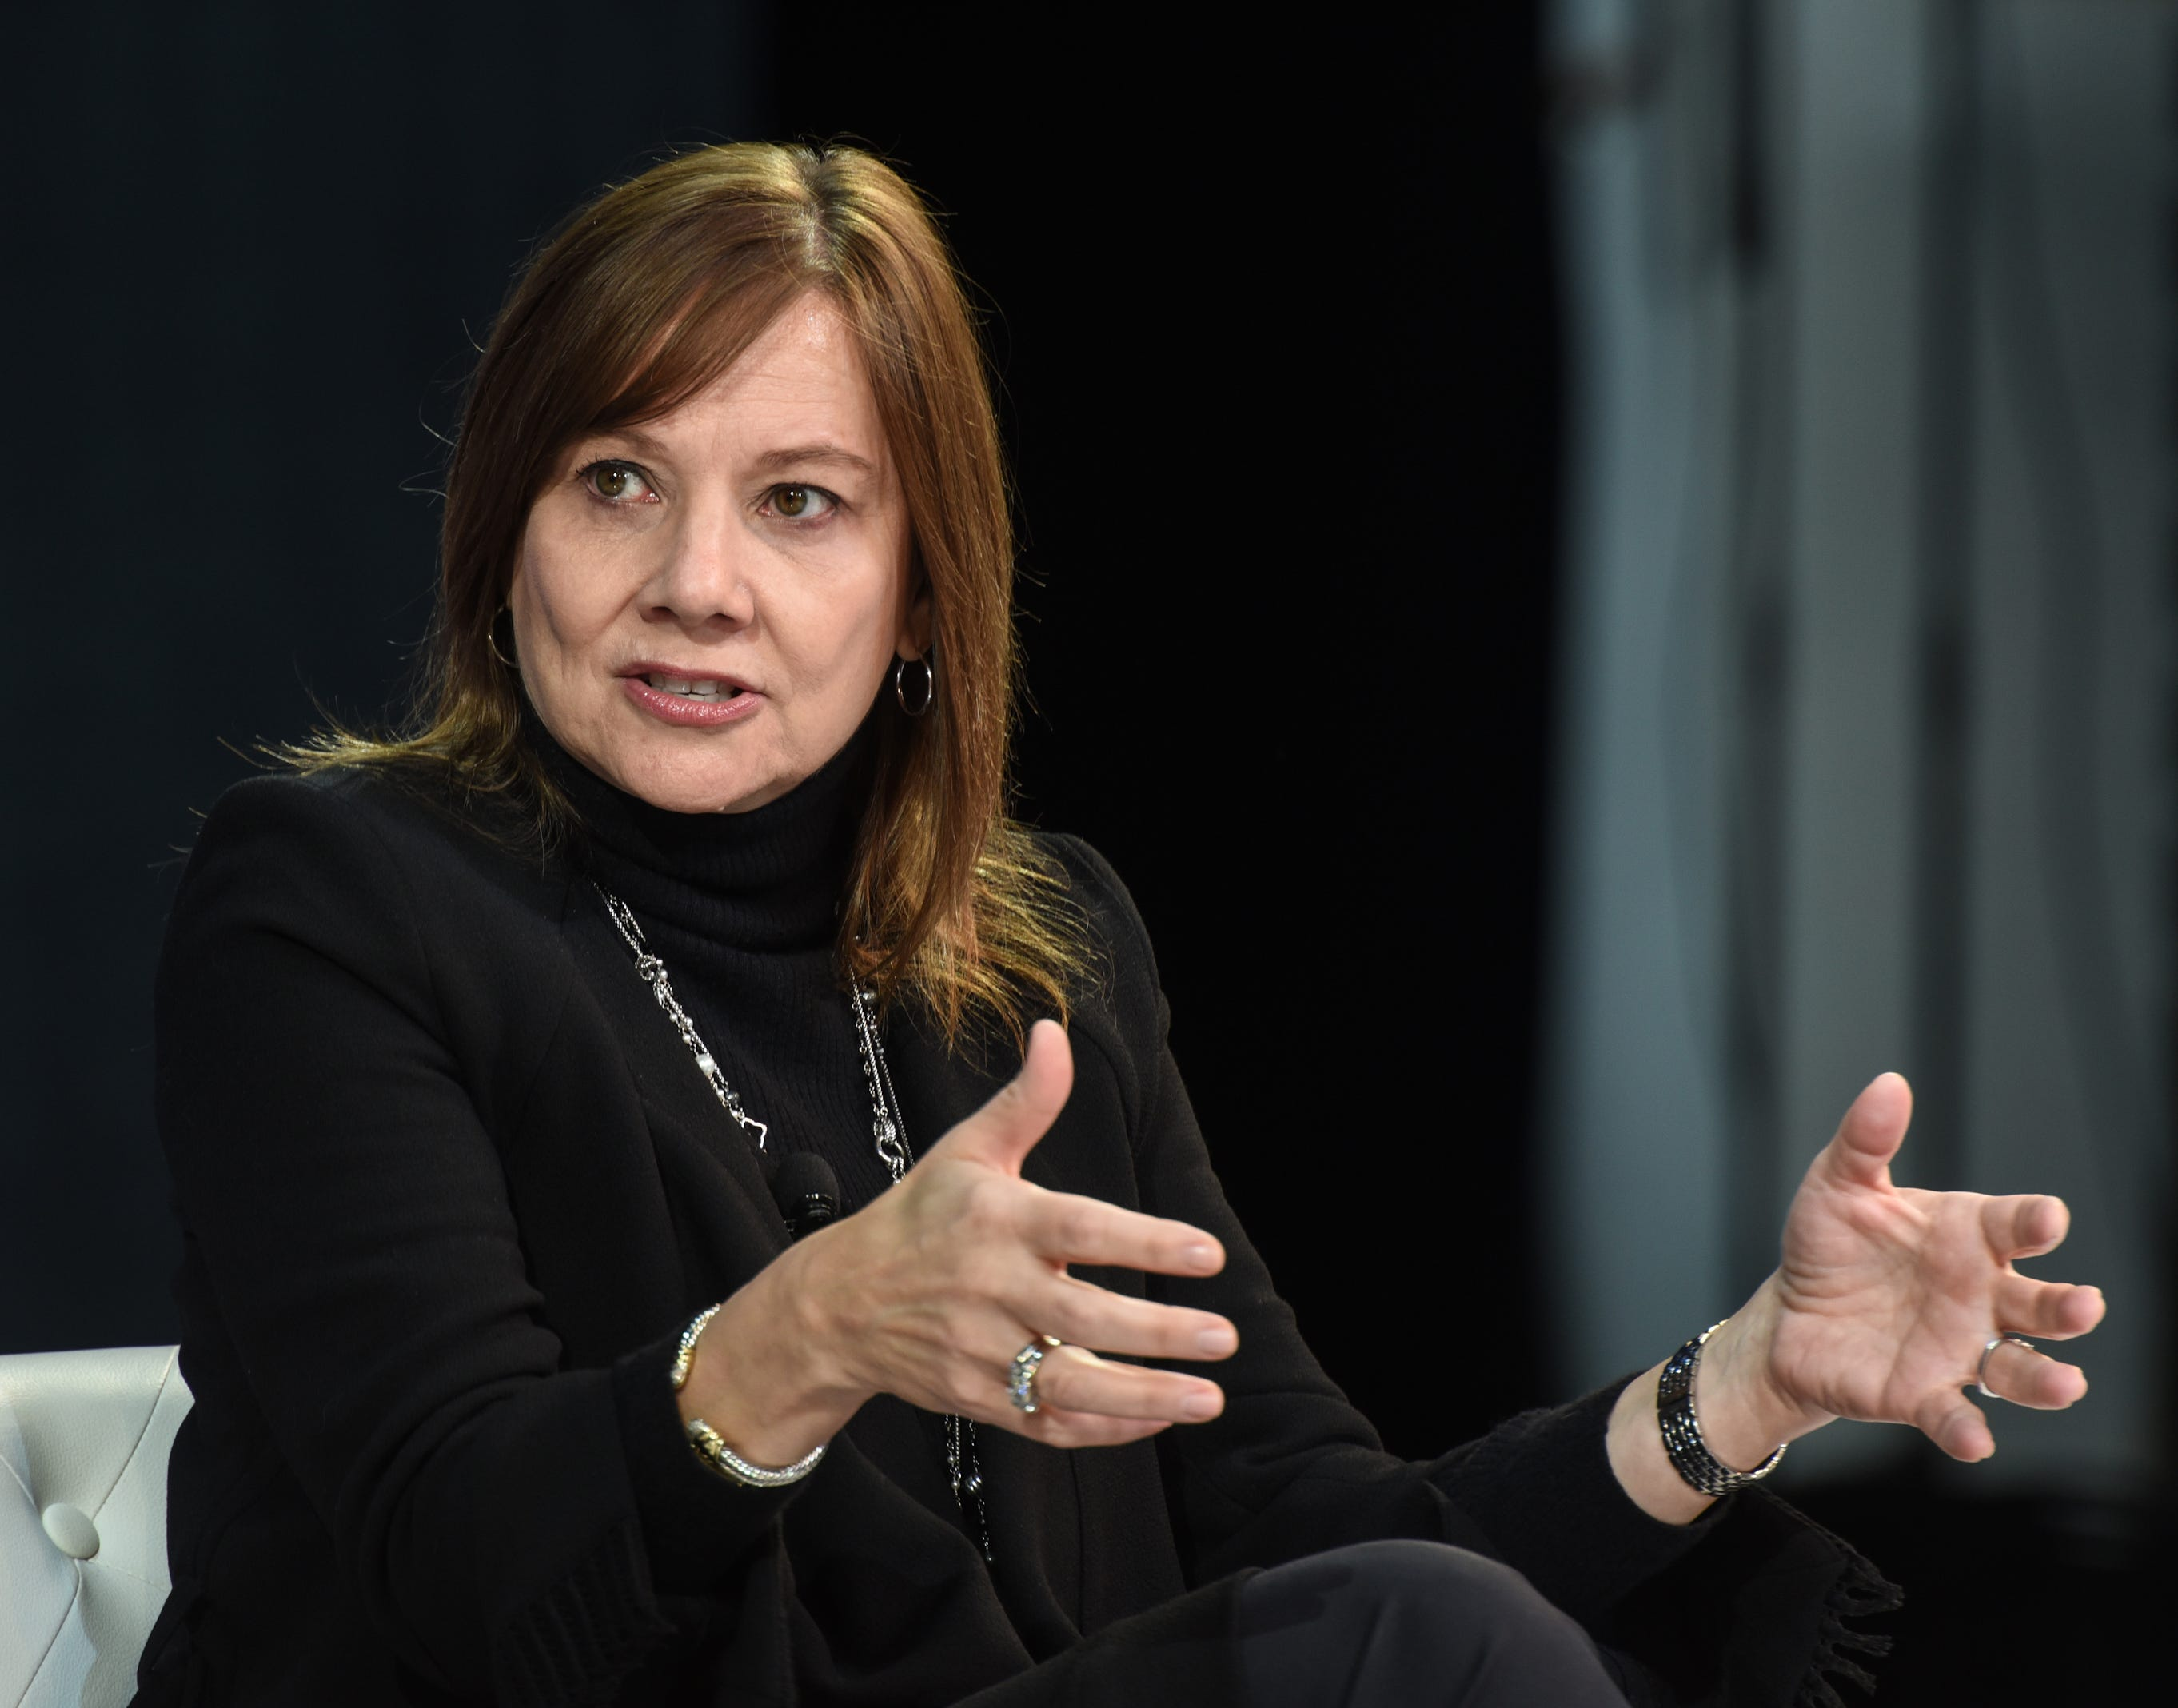 Gm Ceo Barra Earned 21 6 Million In 2019